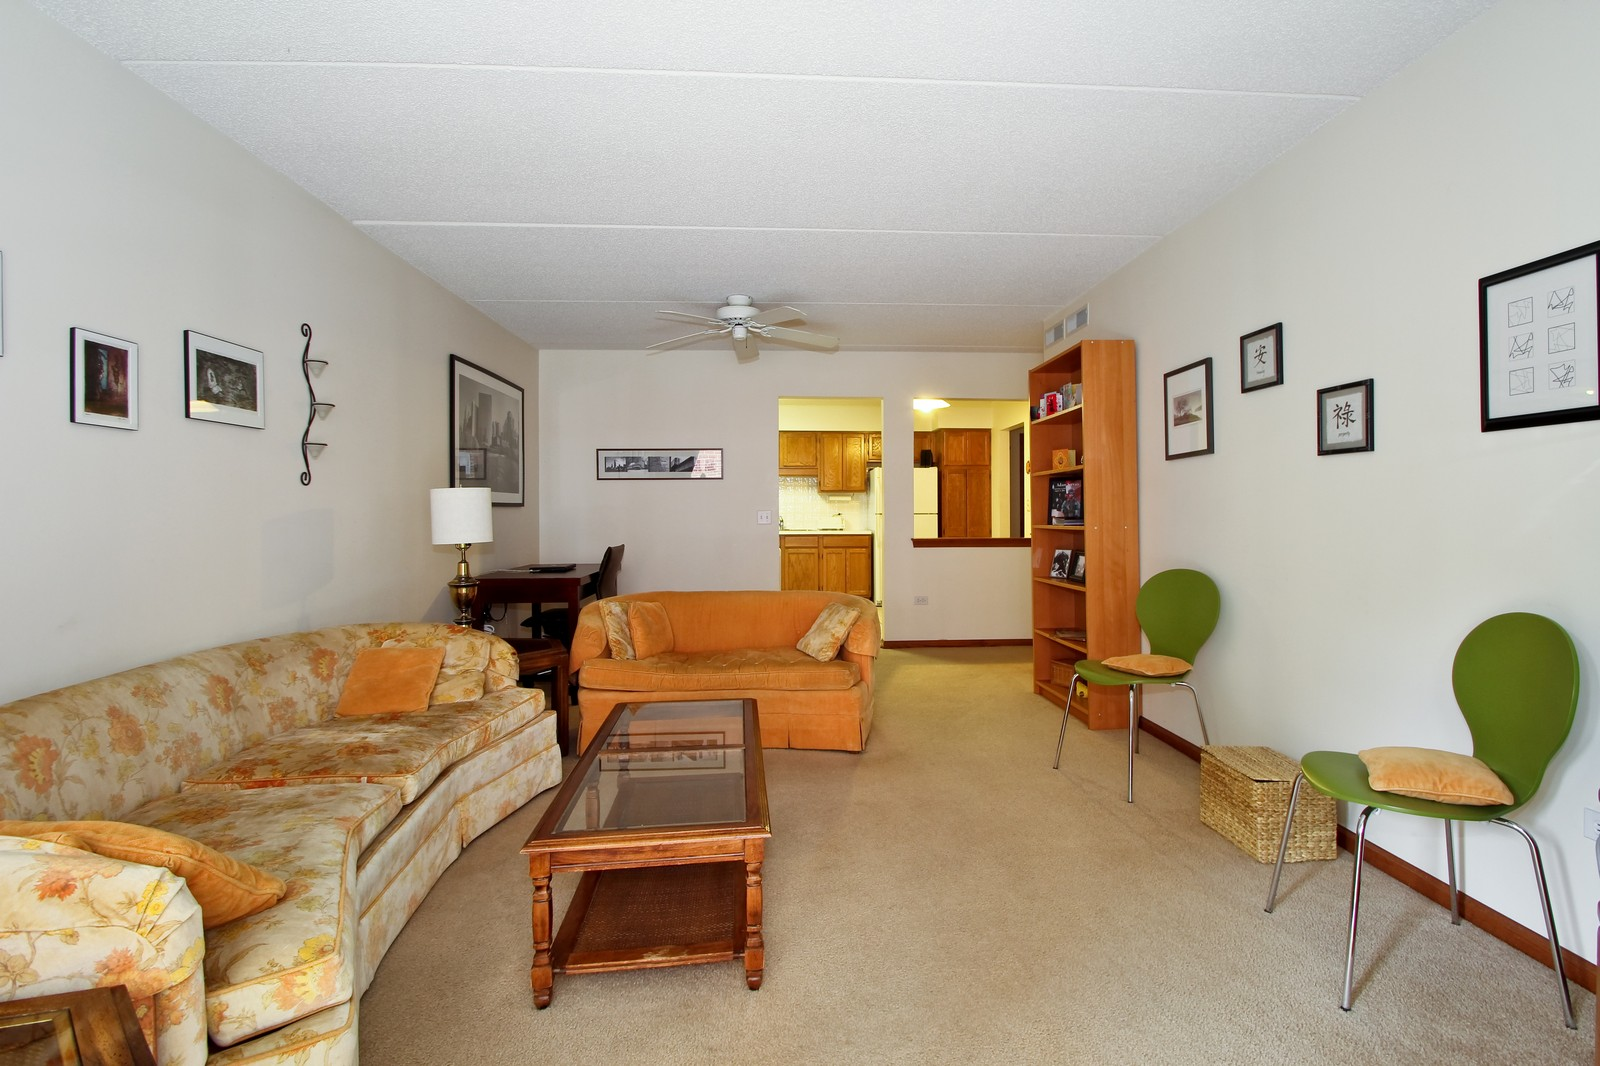 Real Estate Photography - 5340 N Lowell Ave, Unit 206, Chicago, IL, 60630 - Location 1